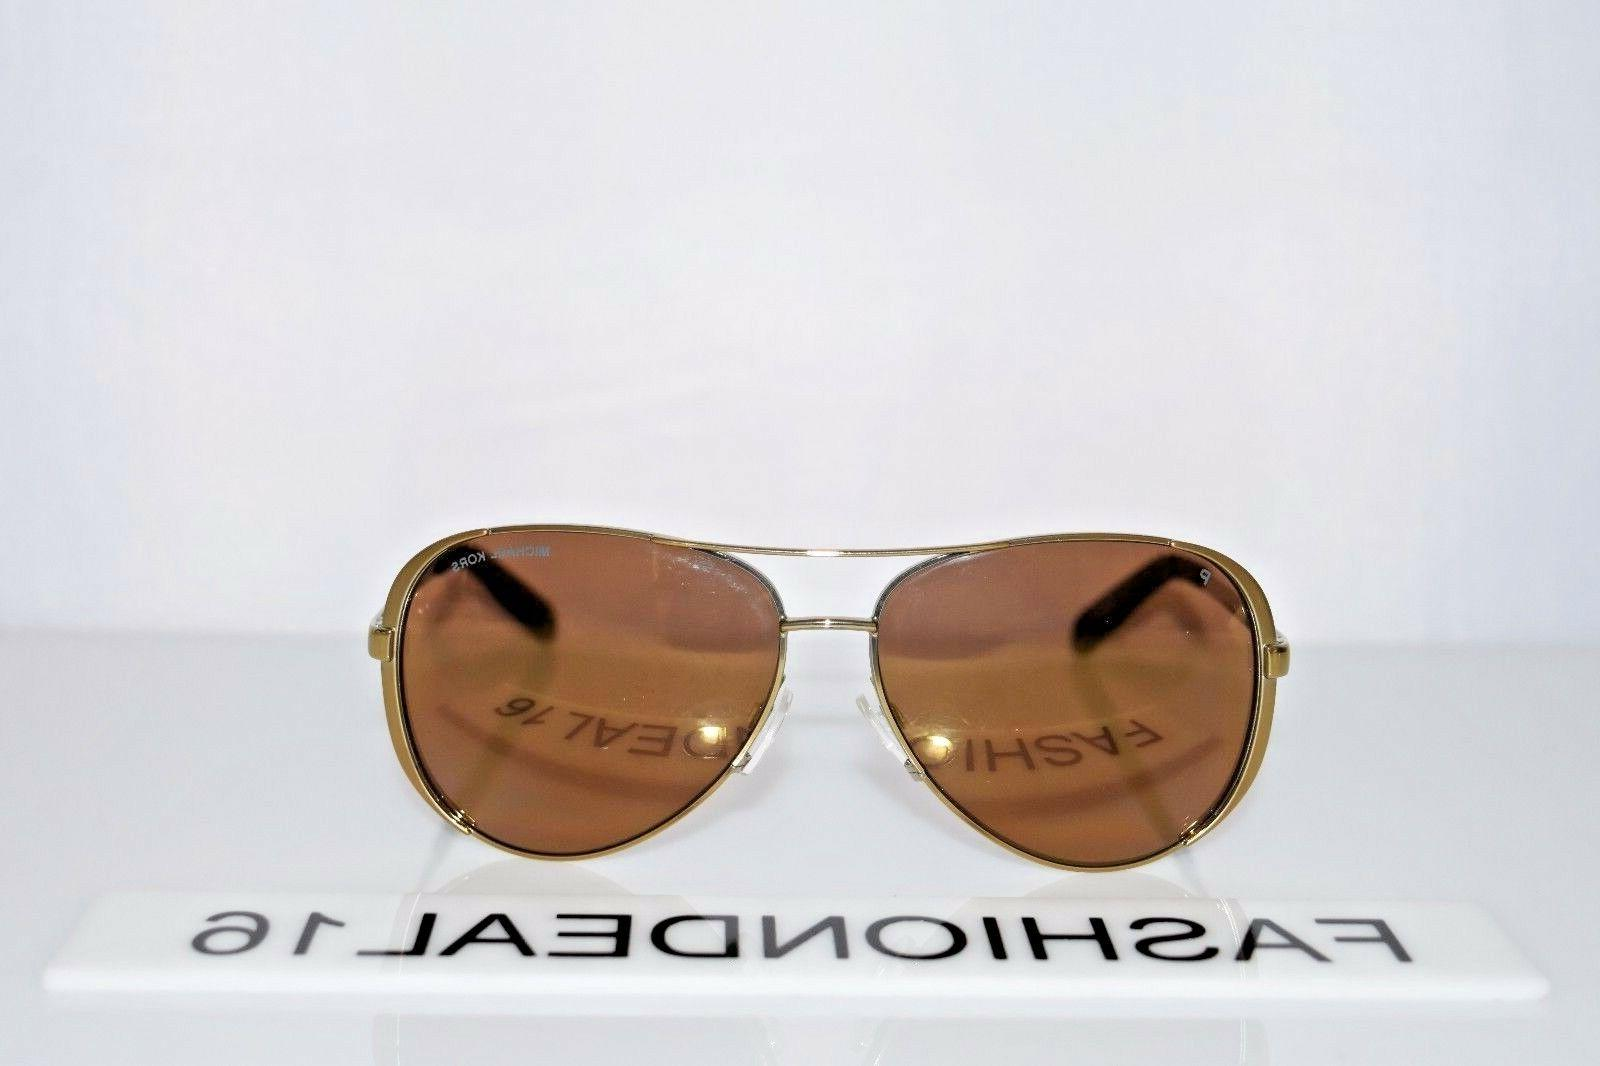 6959f2a14a4ec aviator-sunglasses · Michael Kors. chelsea aviator bronze mirrored polarized  mk5004 10042t